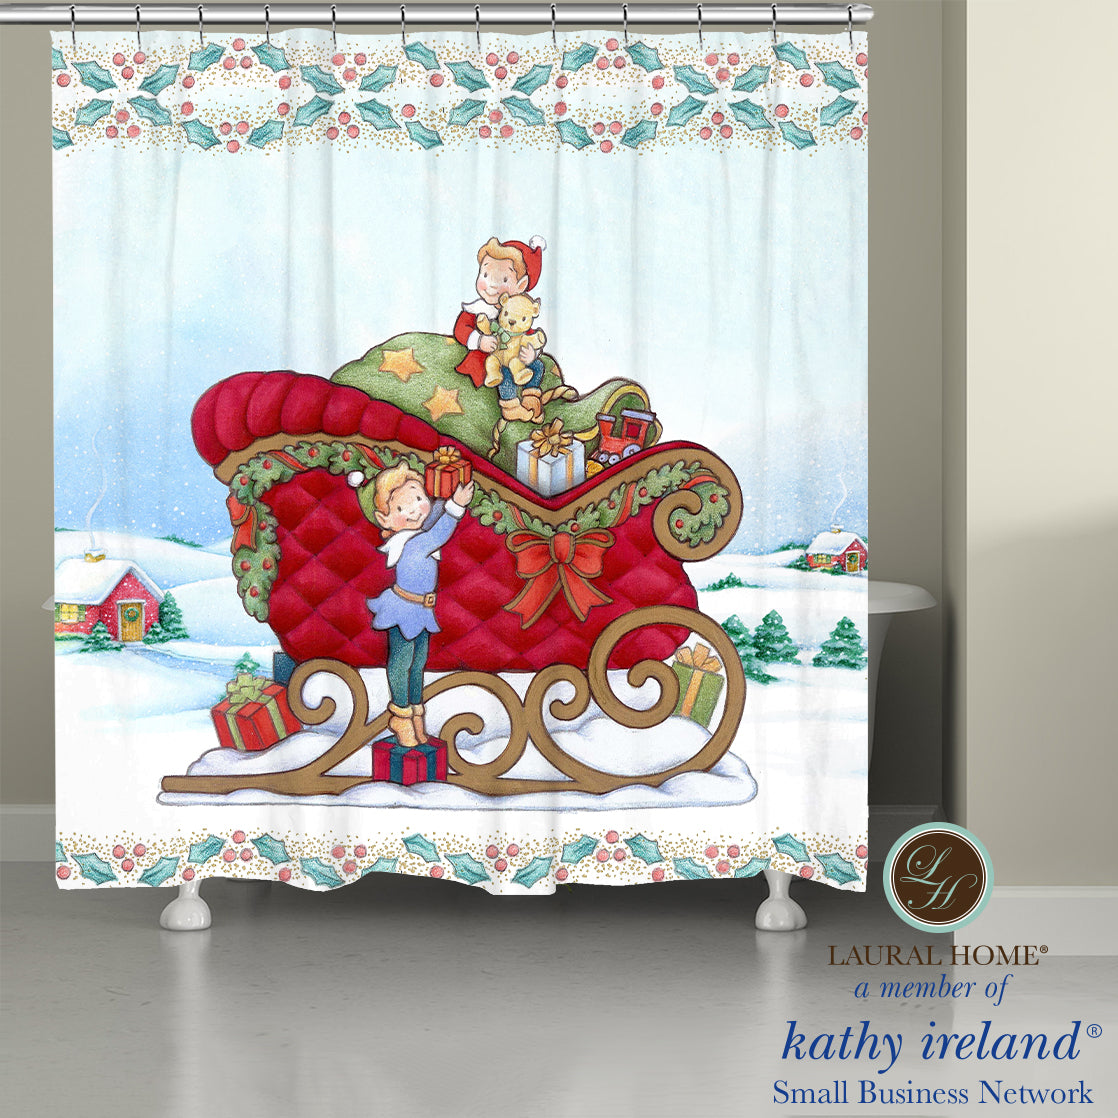 Laural Home kathy ireland®  Small Business Network Member Once Upon a Christmas Shower Curtain